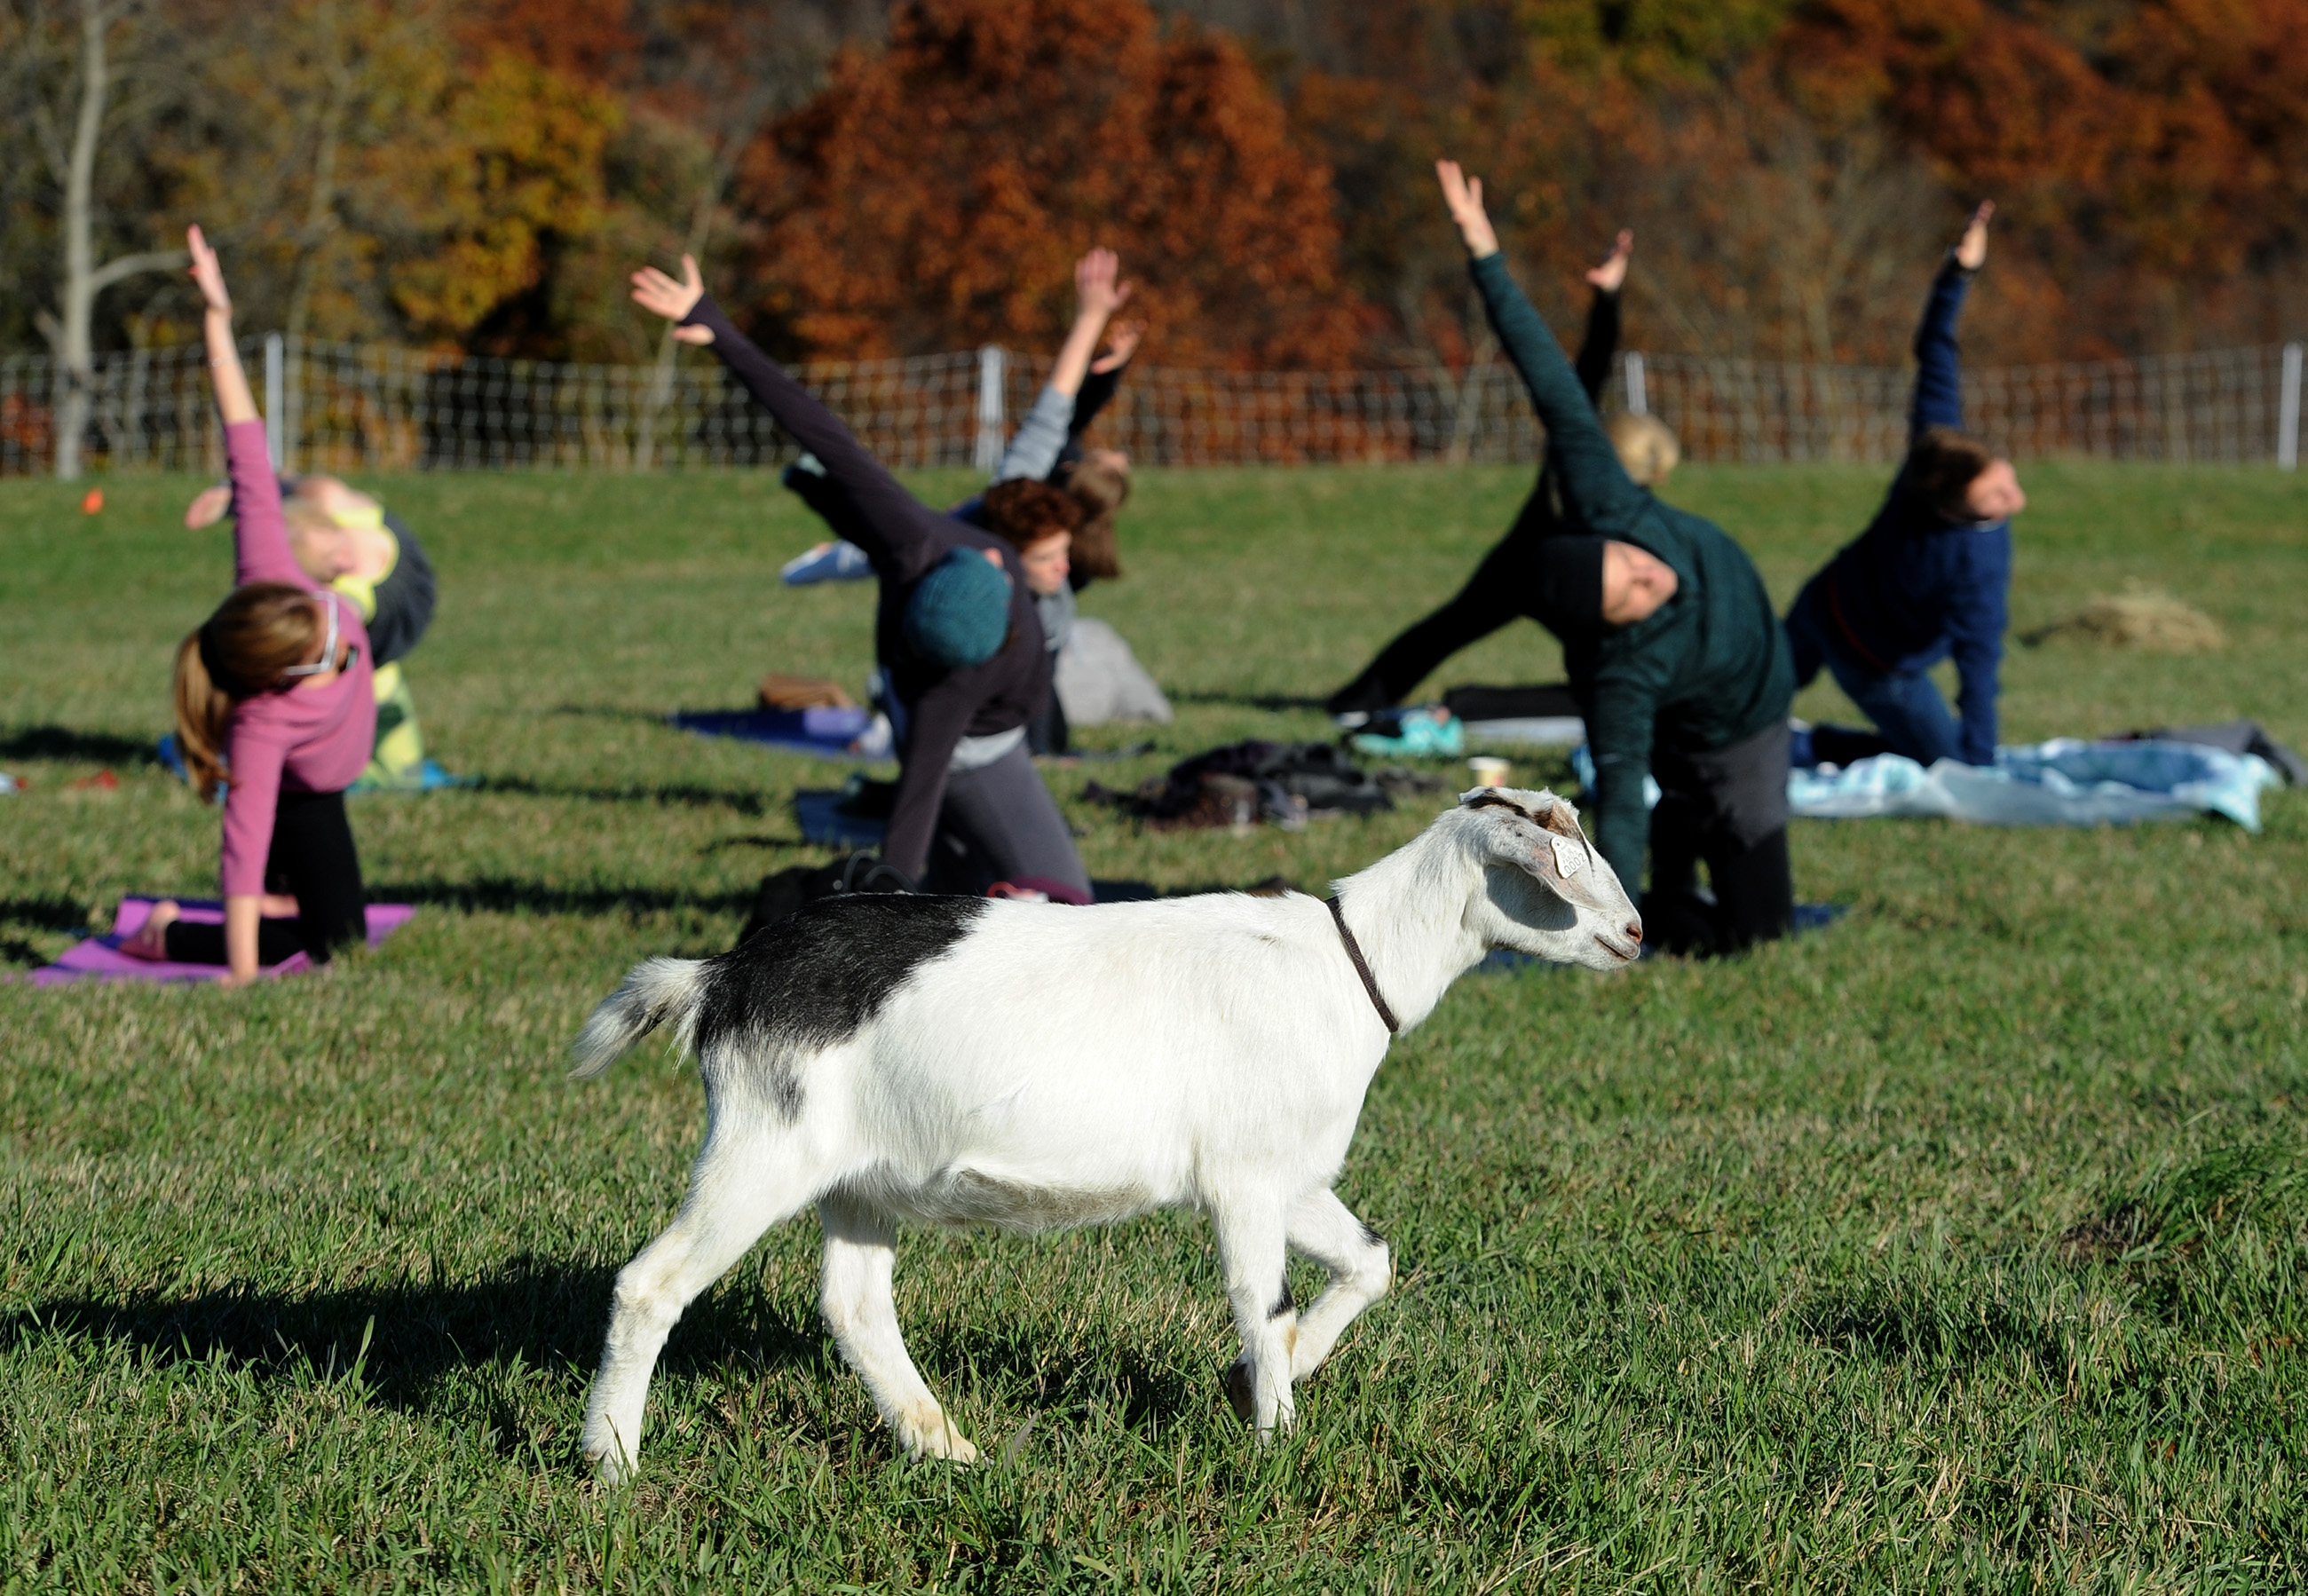 20161112ppNamasHayYoga3MAG-2 Pam Panchak/Post-Gazette 11122016 PHOTOSLUG: NasmasHayYoga SECTION: Mag CAPTION: A goat wanders in front of group during a yoga session at the NamasHay Goat Yoga fundraiser for the Western Pa. Humane Society at Have U Heard goat farm in Collier Twp. Thursday, November 12, 2016.